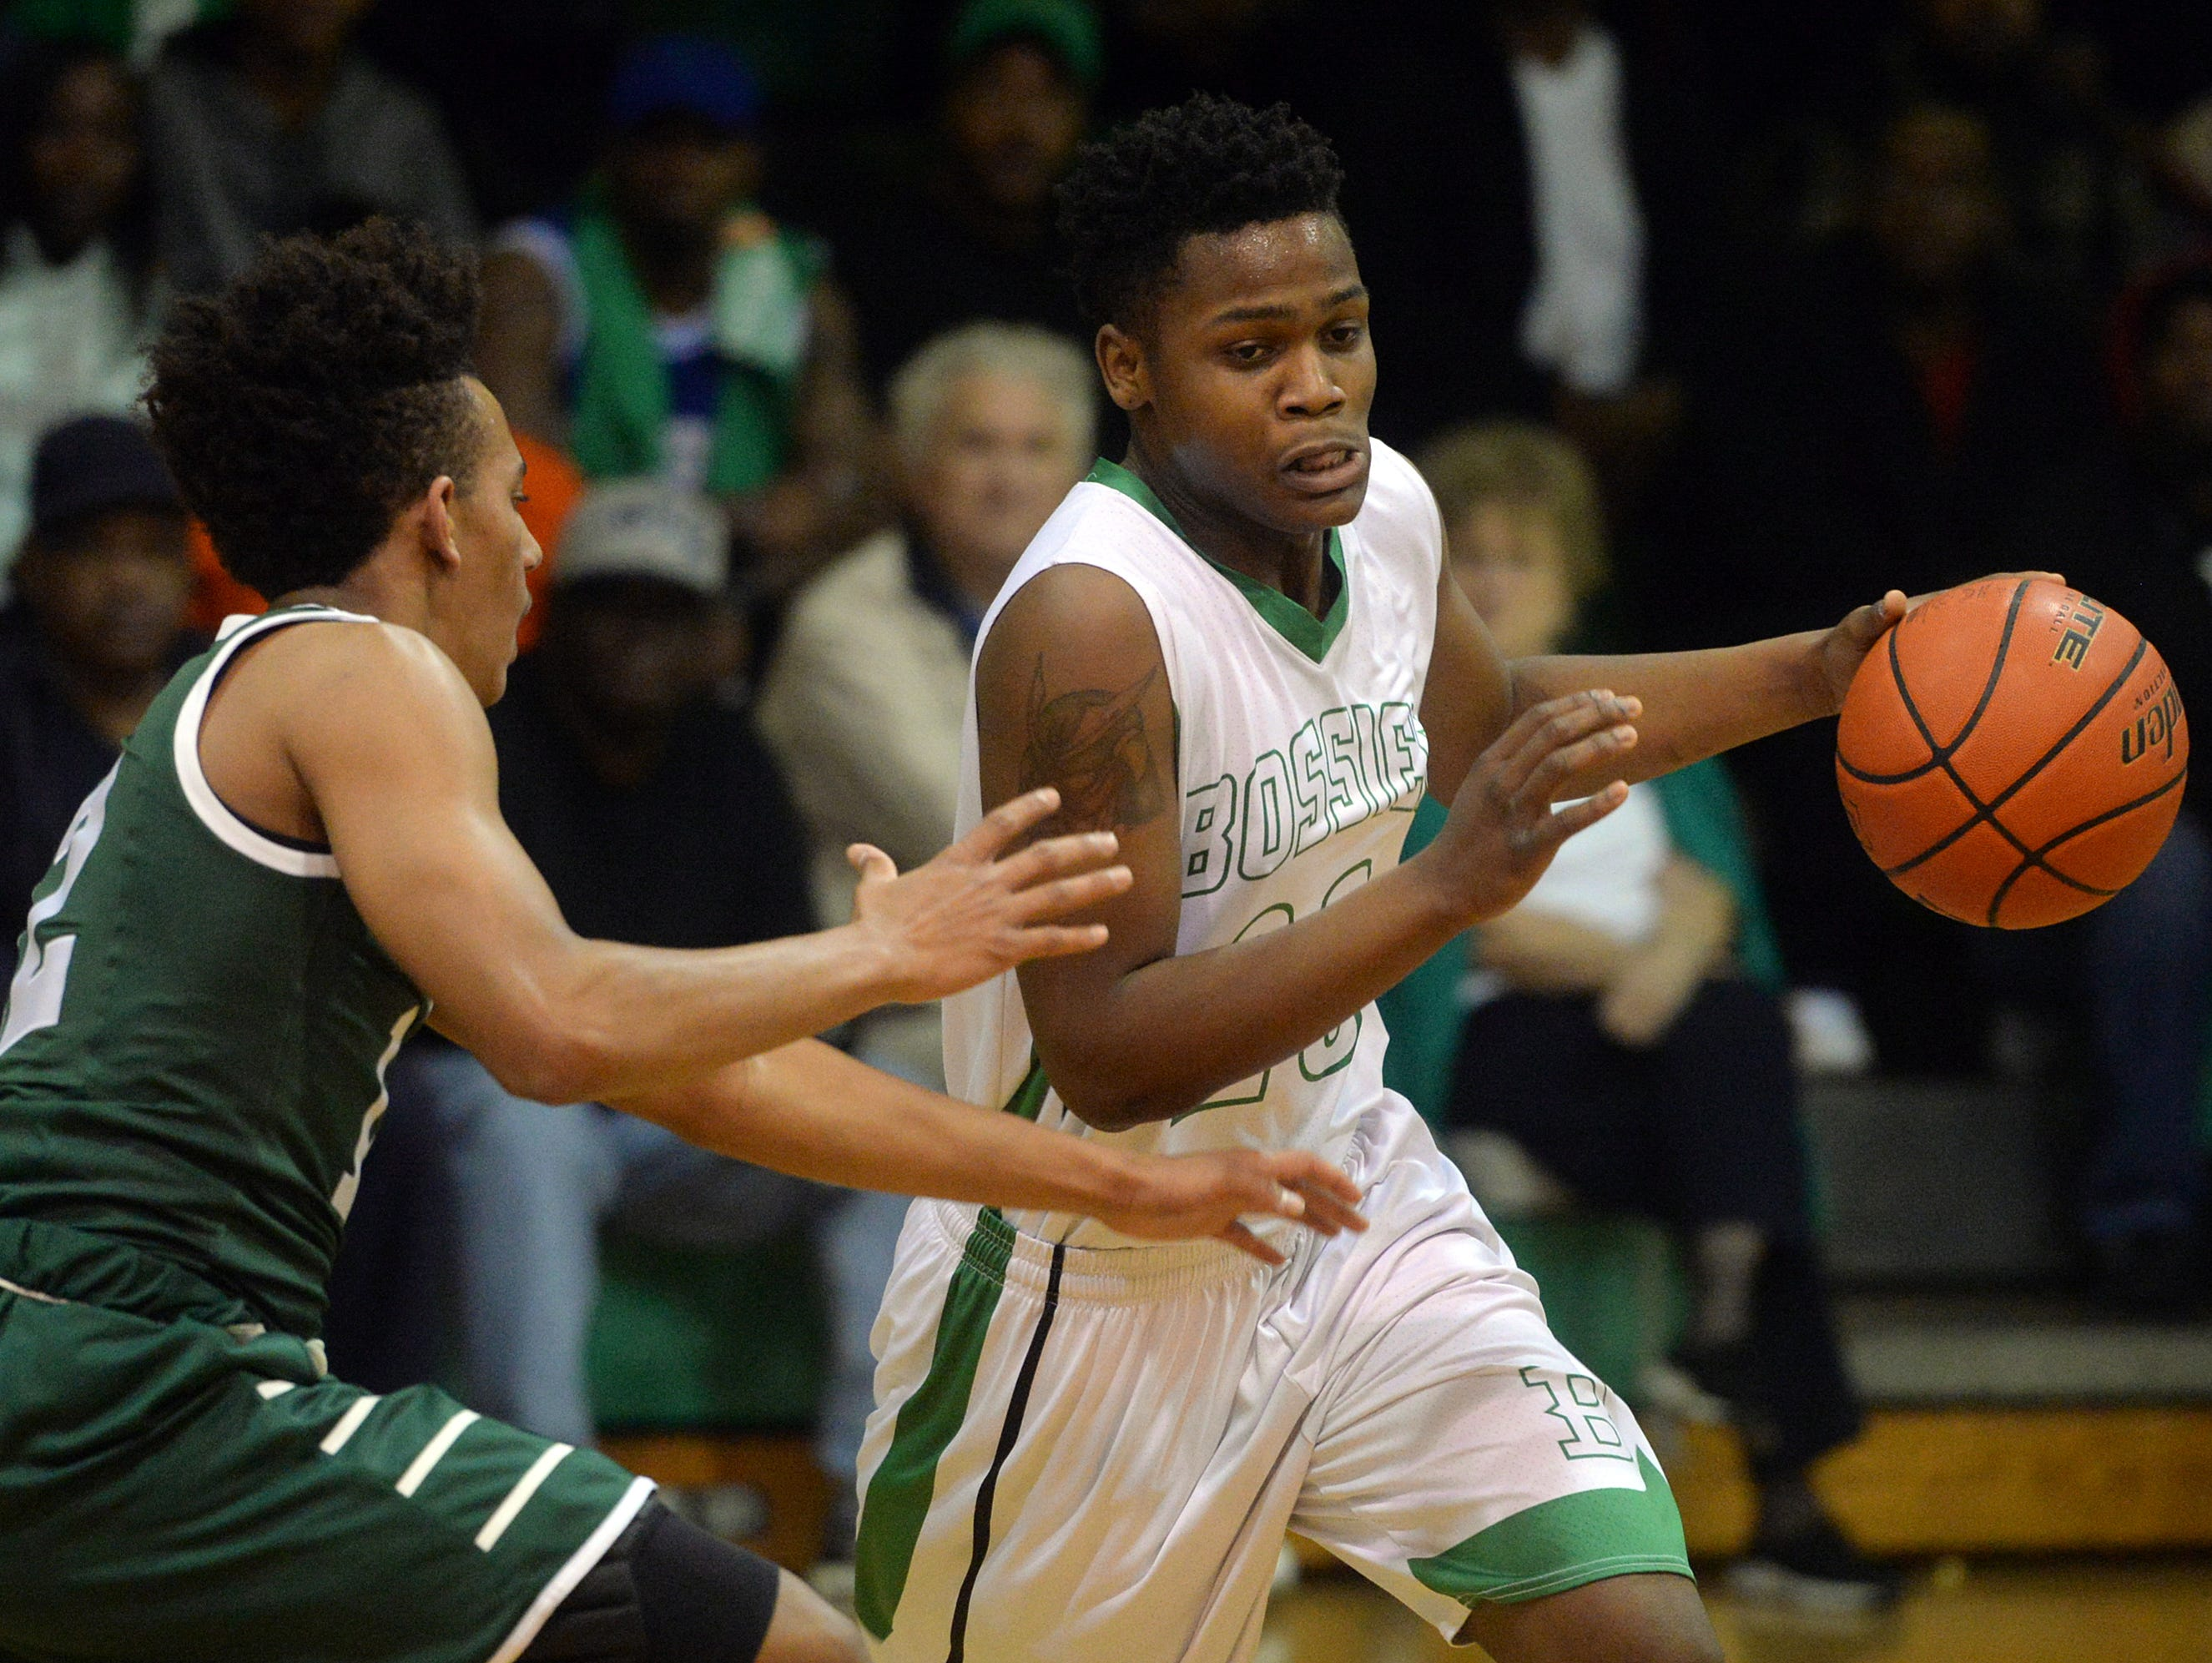 Senior guard Tyrese English is Bossier's leading scorer during the postseason with more than 19 points per game.